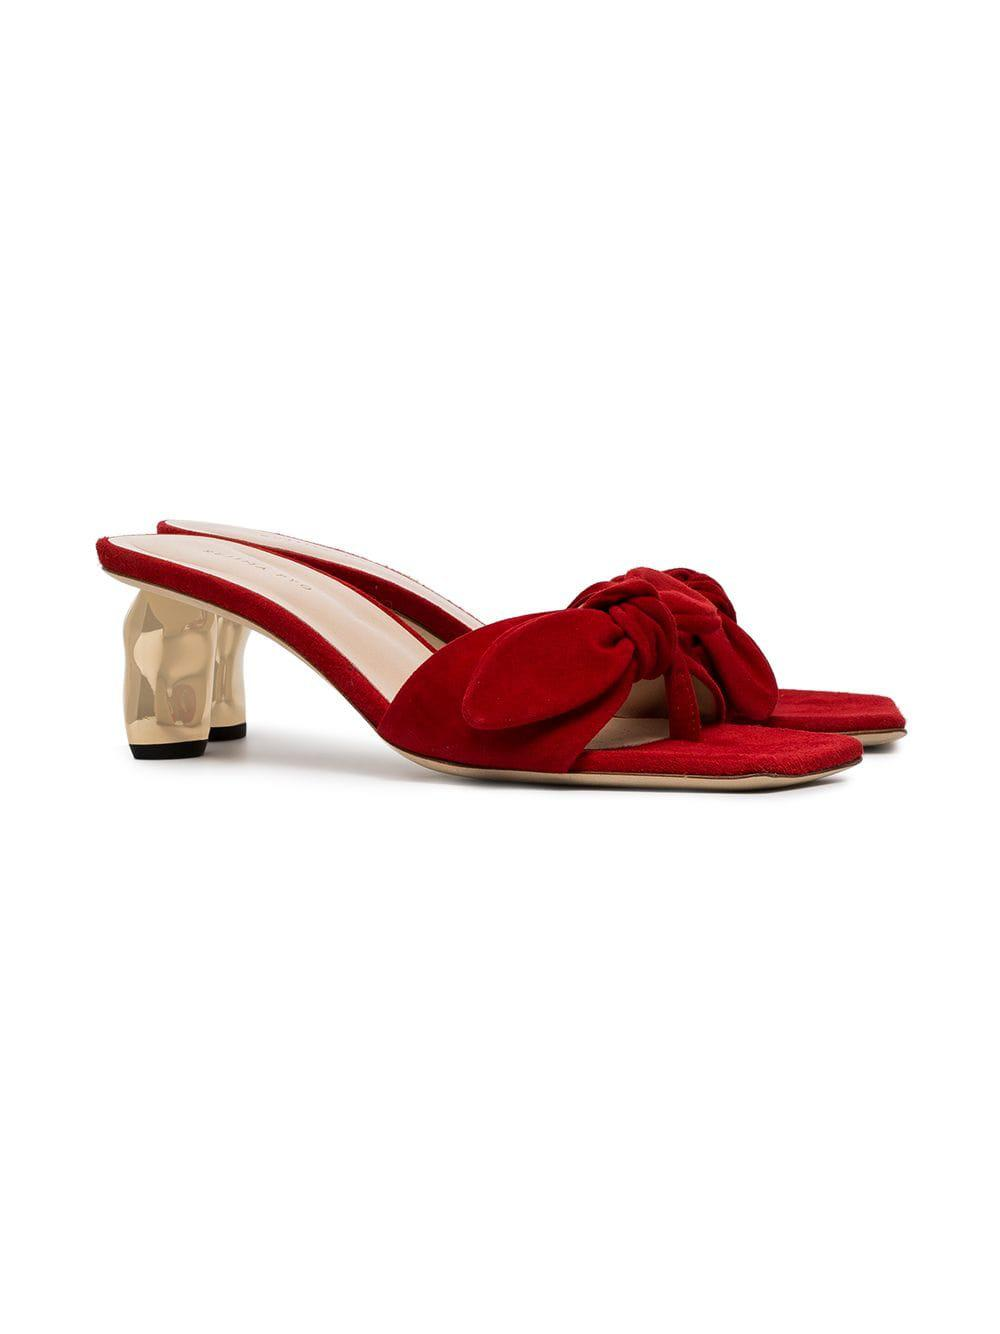 e87a28b15 Rejina Pyo - Red Lottie Bow Embellished Suede Sandals - Lyst. View  fullscreen